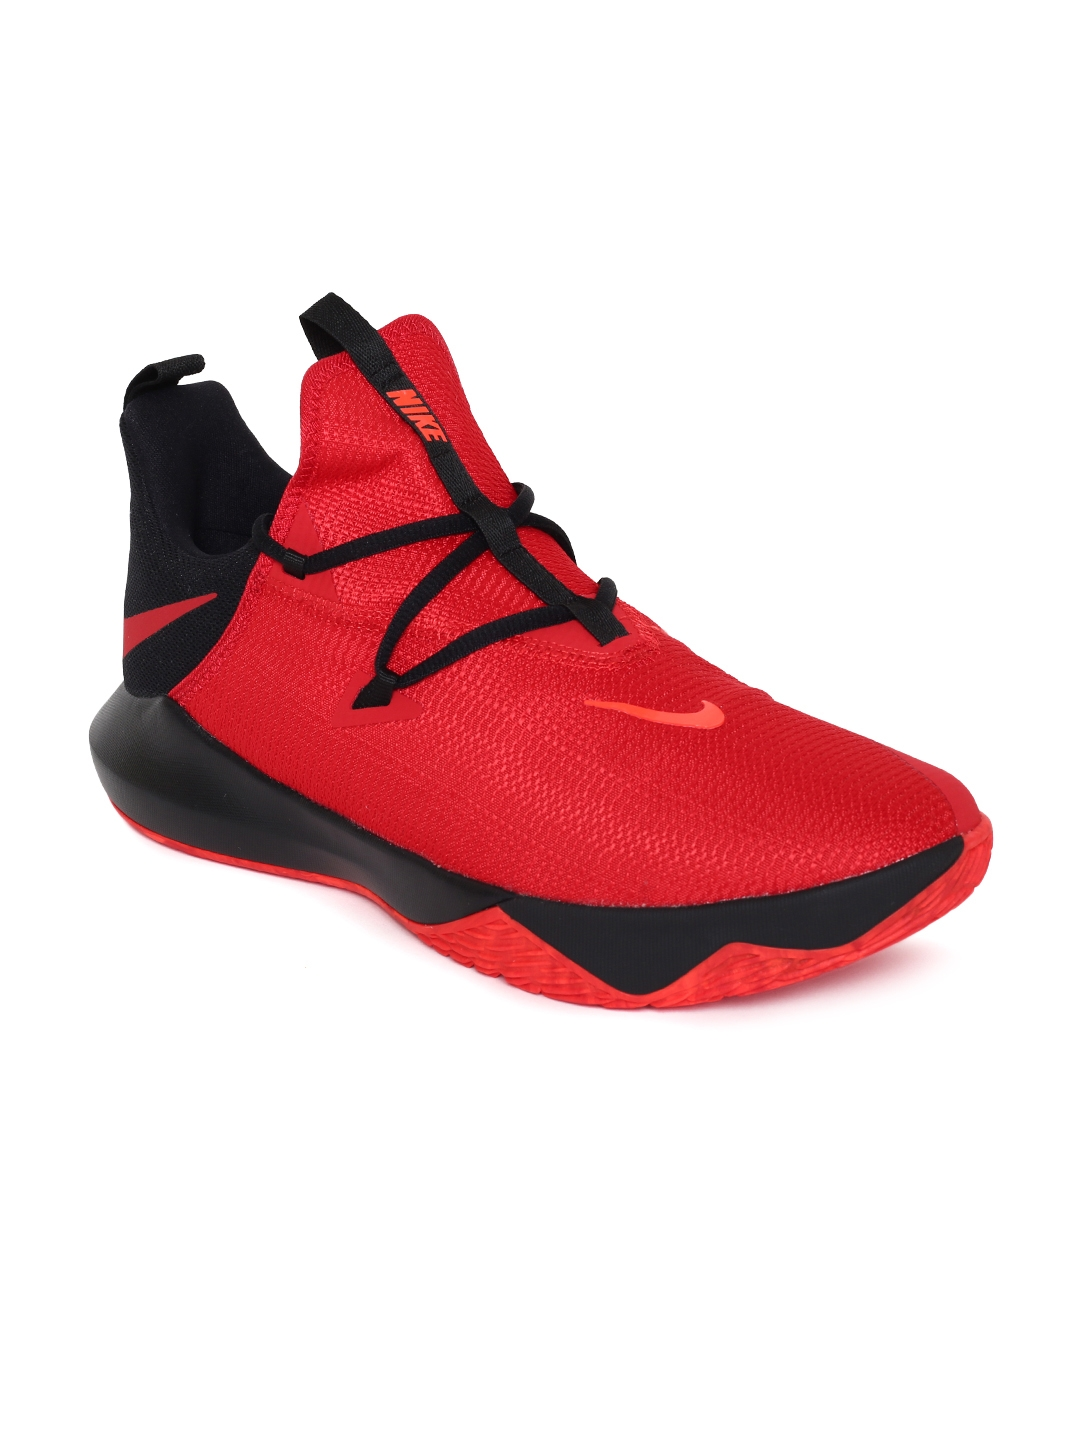 best cheap d82cf a51d1 Buy Nike Men Red Solid ZOOM SHIFT 2 Basketball Shoes - Sports Shoes for Men  6676972   Myntra